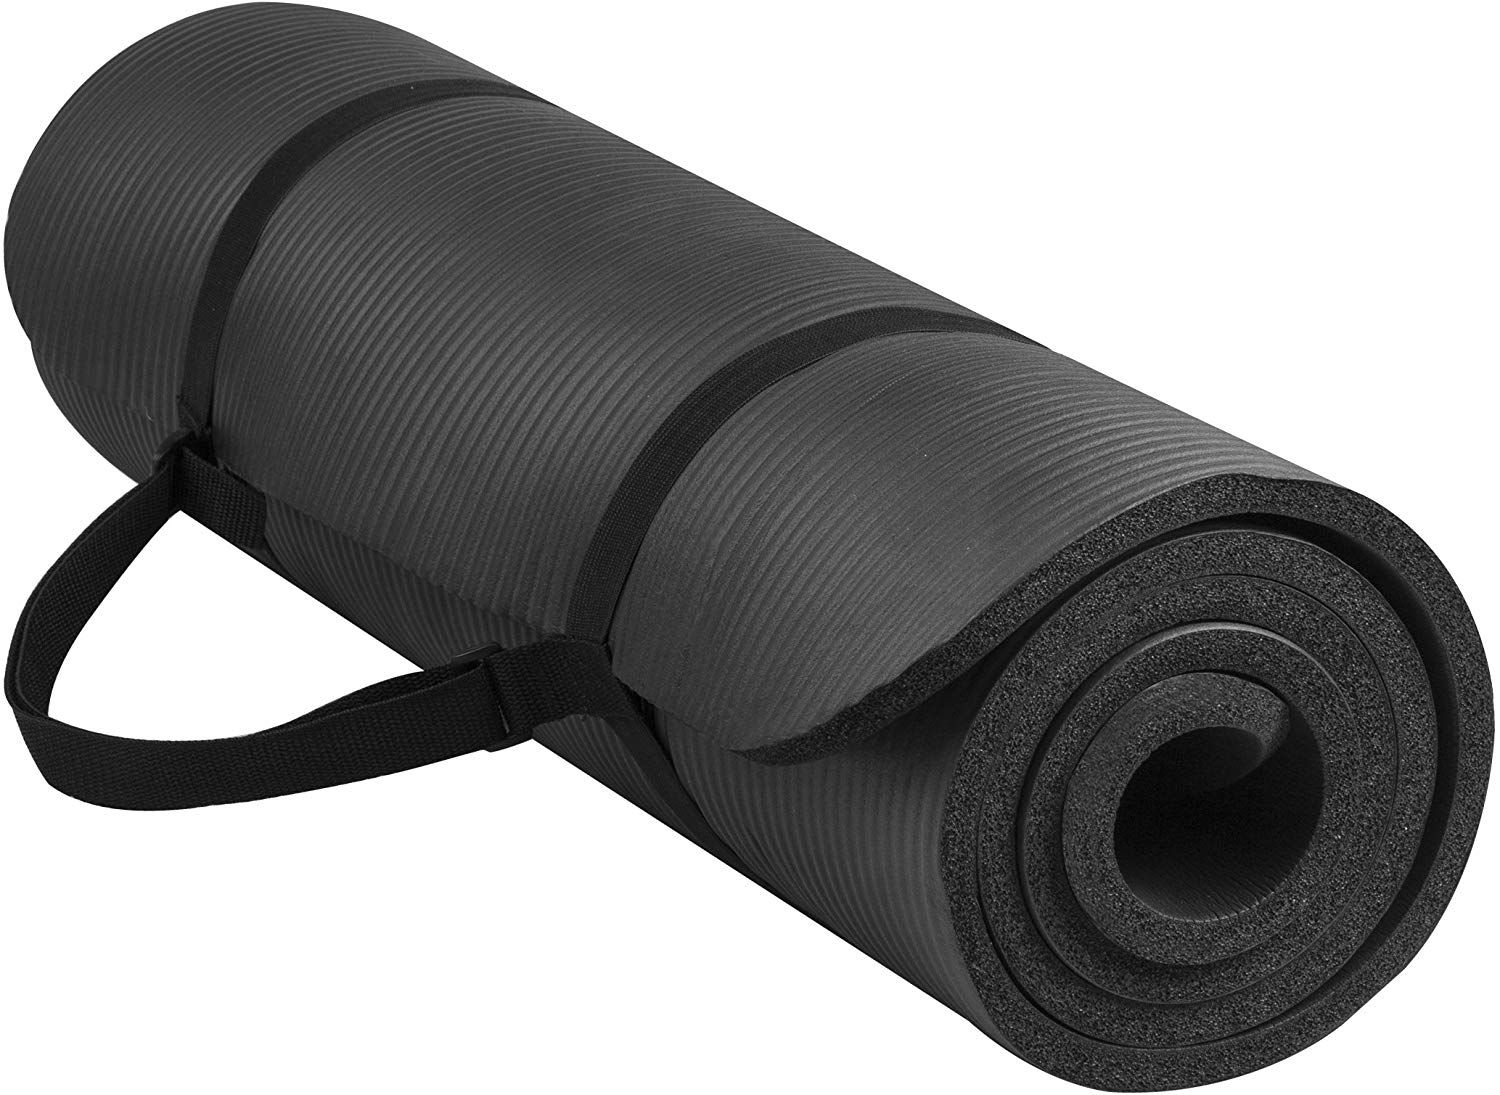 Balancefrom Goyoga All Purpose 1 2 Inch Extra Thick High Density Anti Tear Exercise Yoga Mat With Carrying Strap In 2020 Mat Exercises Yoga Fitness Yoga Mat